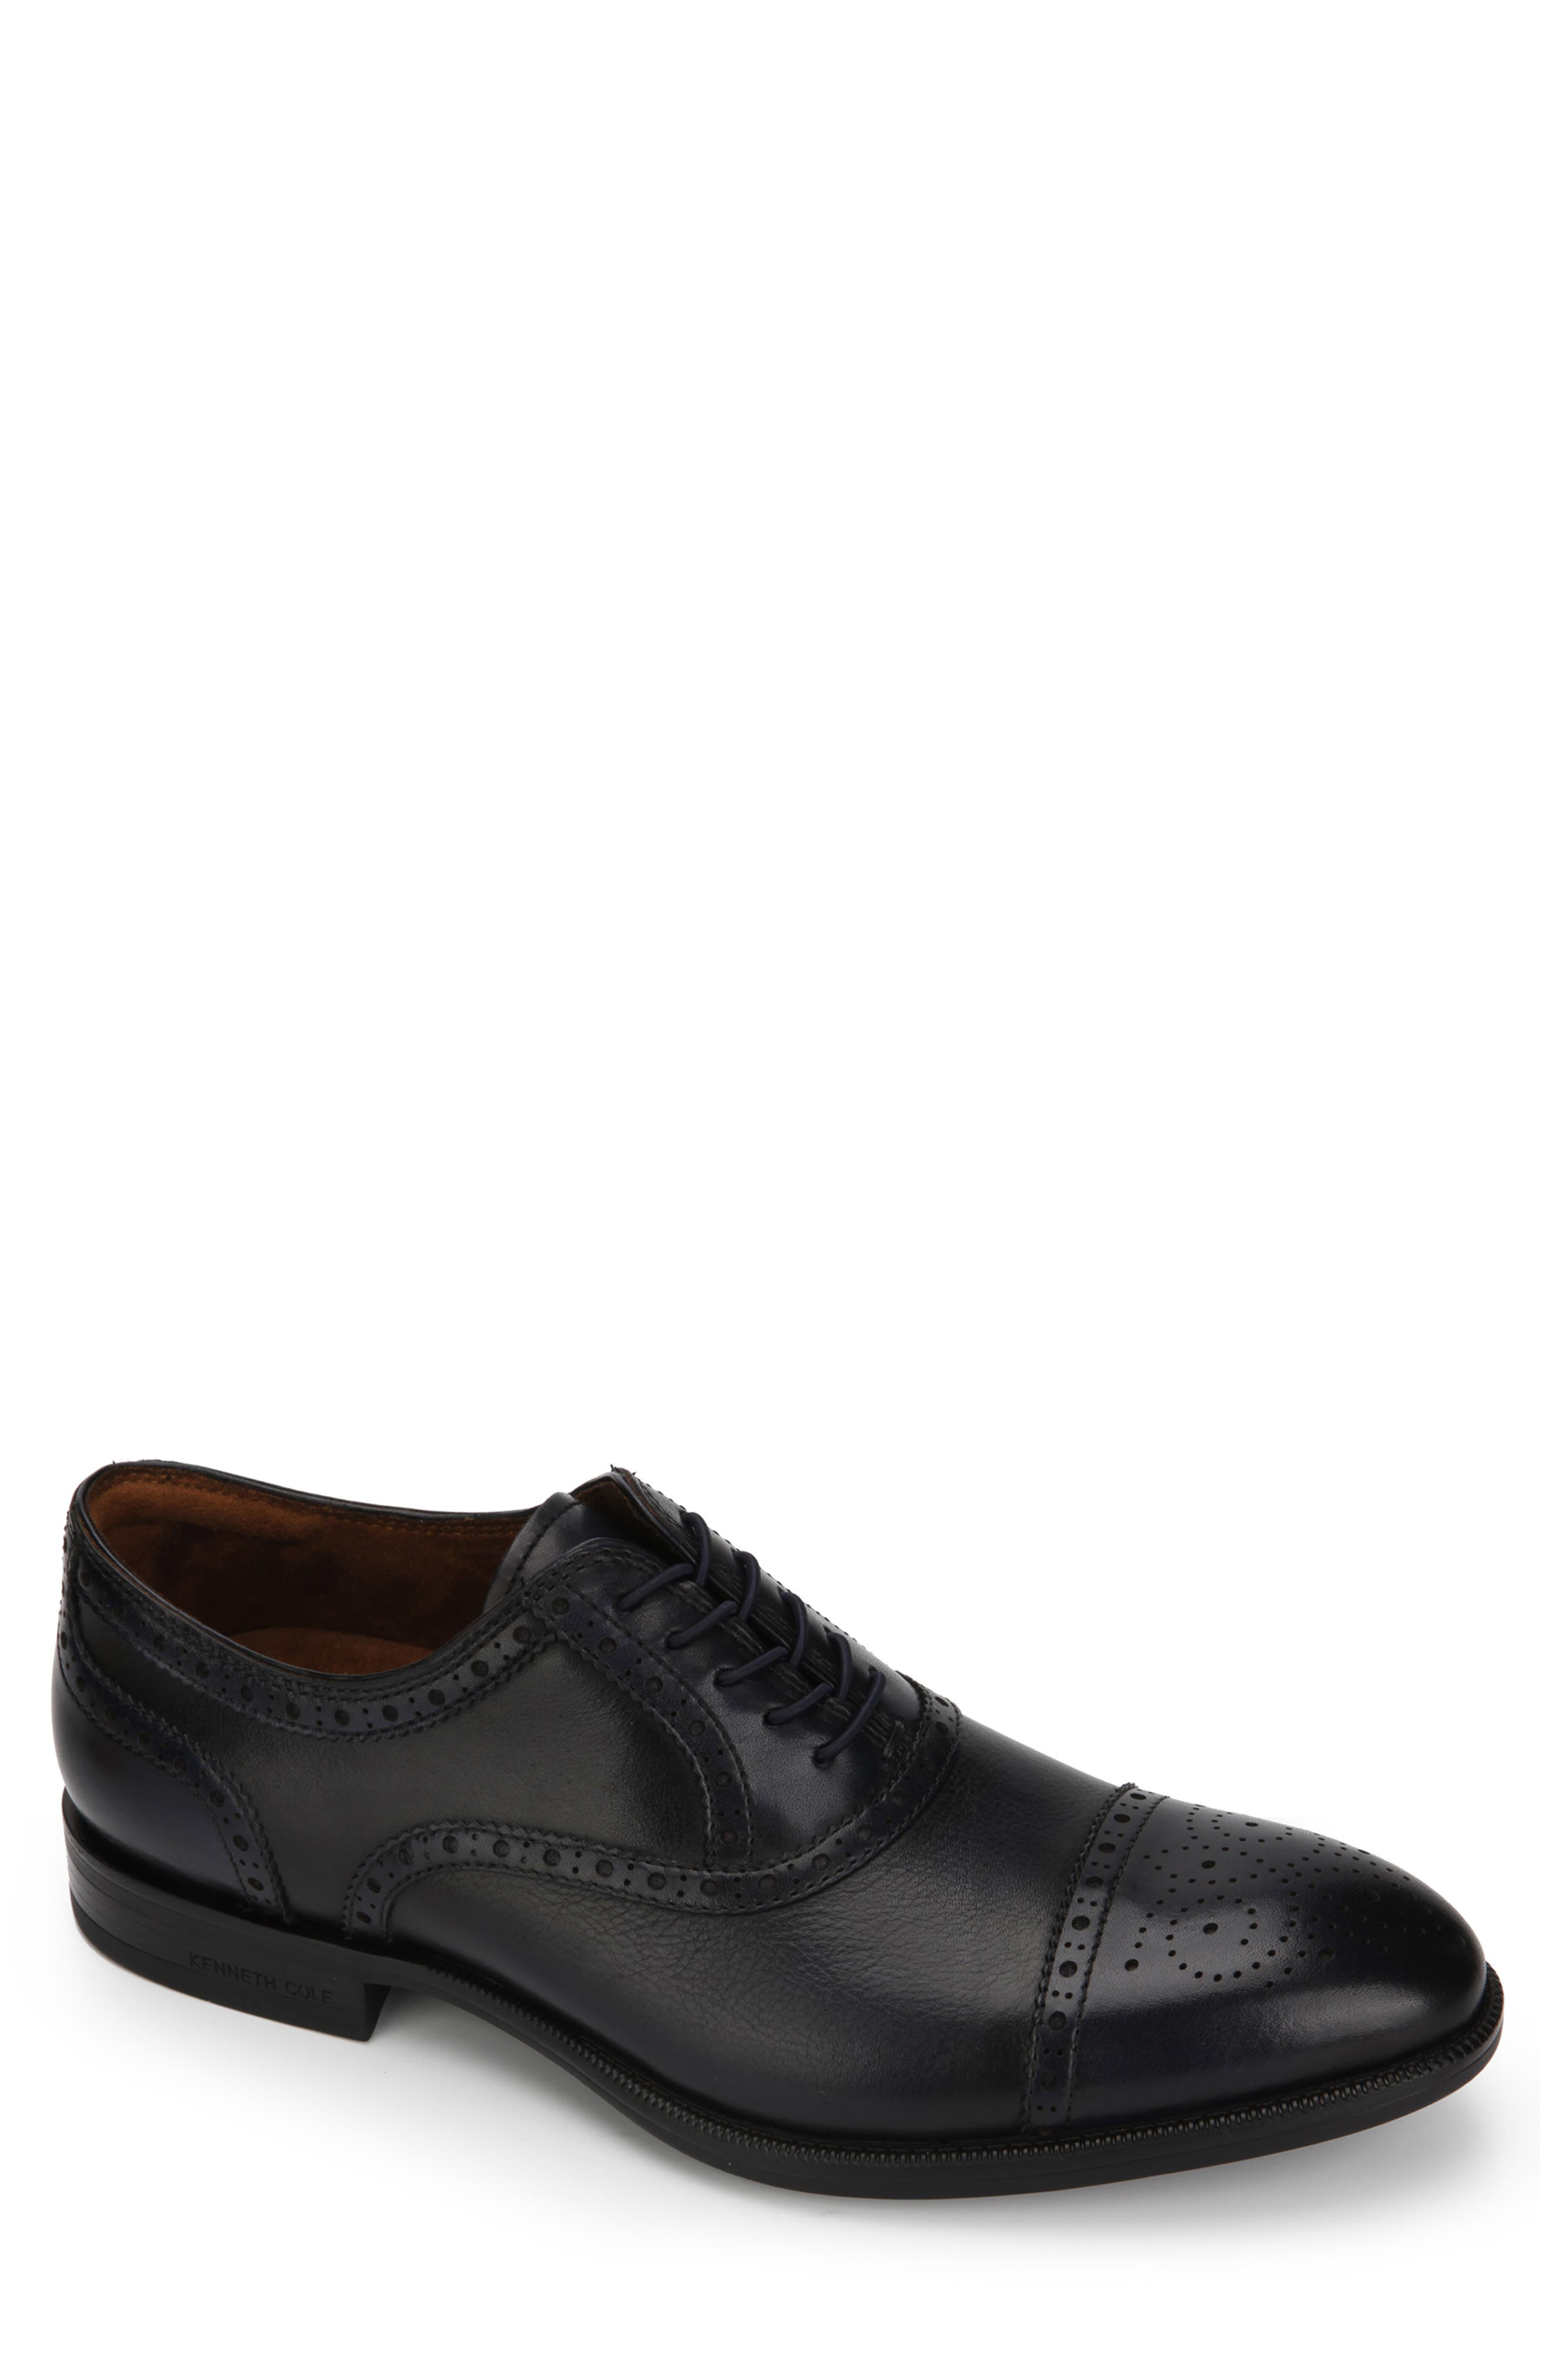 Image of Kenneth Cole New York Cap Toe Oxford